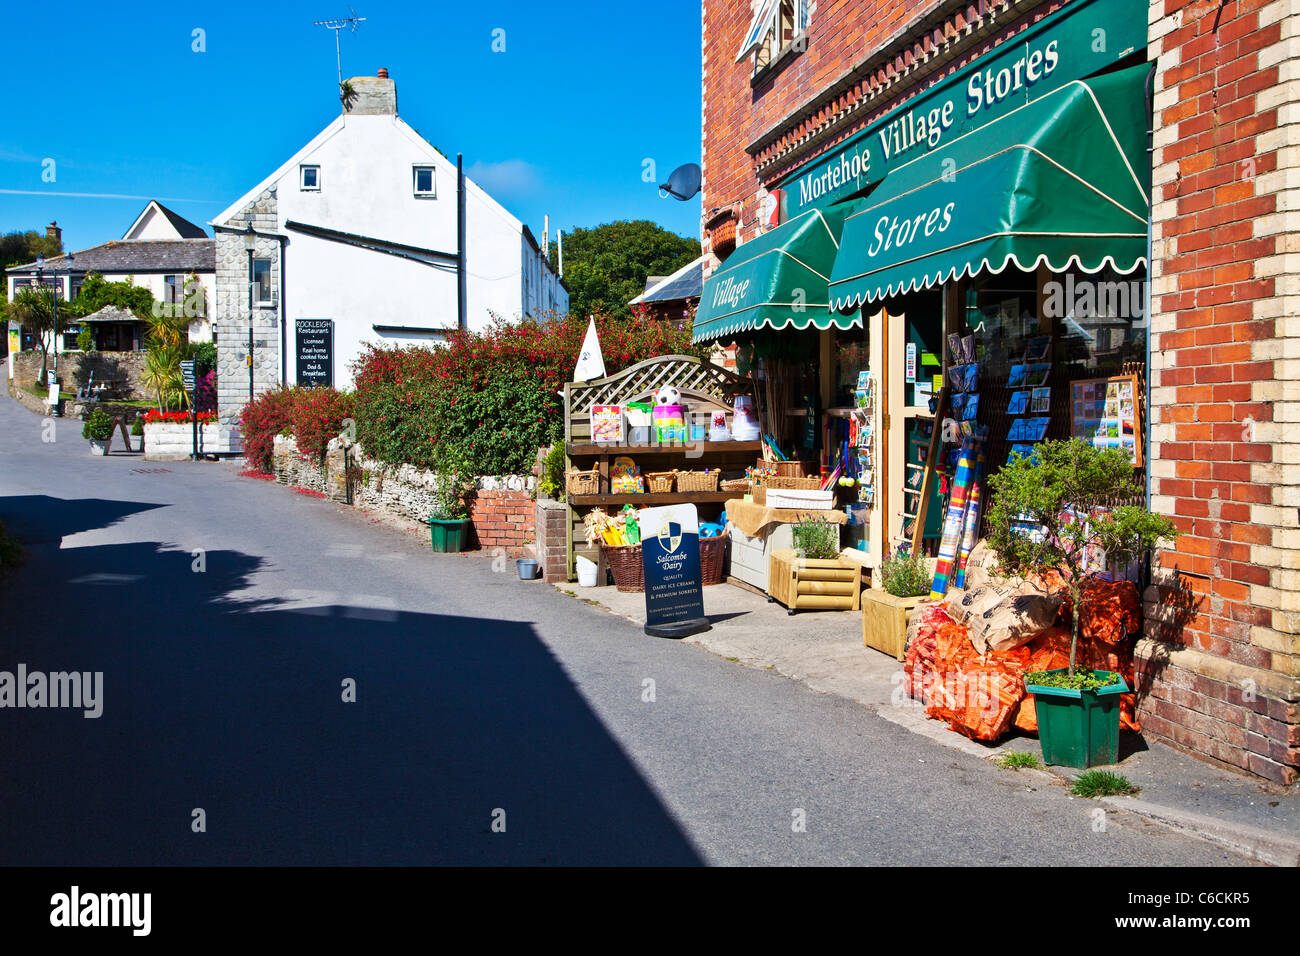 The main street through the pretty village of Morthoe near Woolacombe in north Devon, England, UK - Stock Image